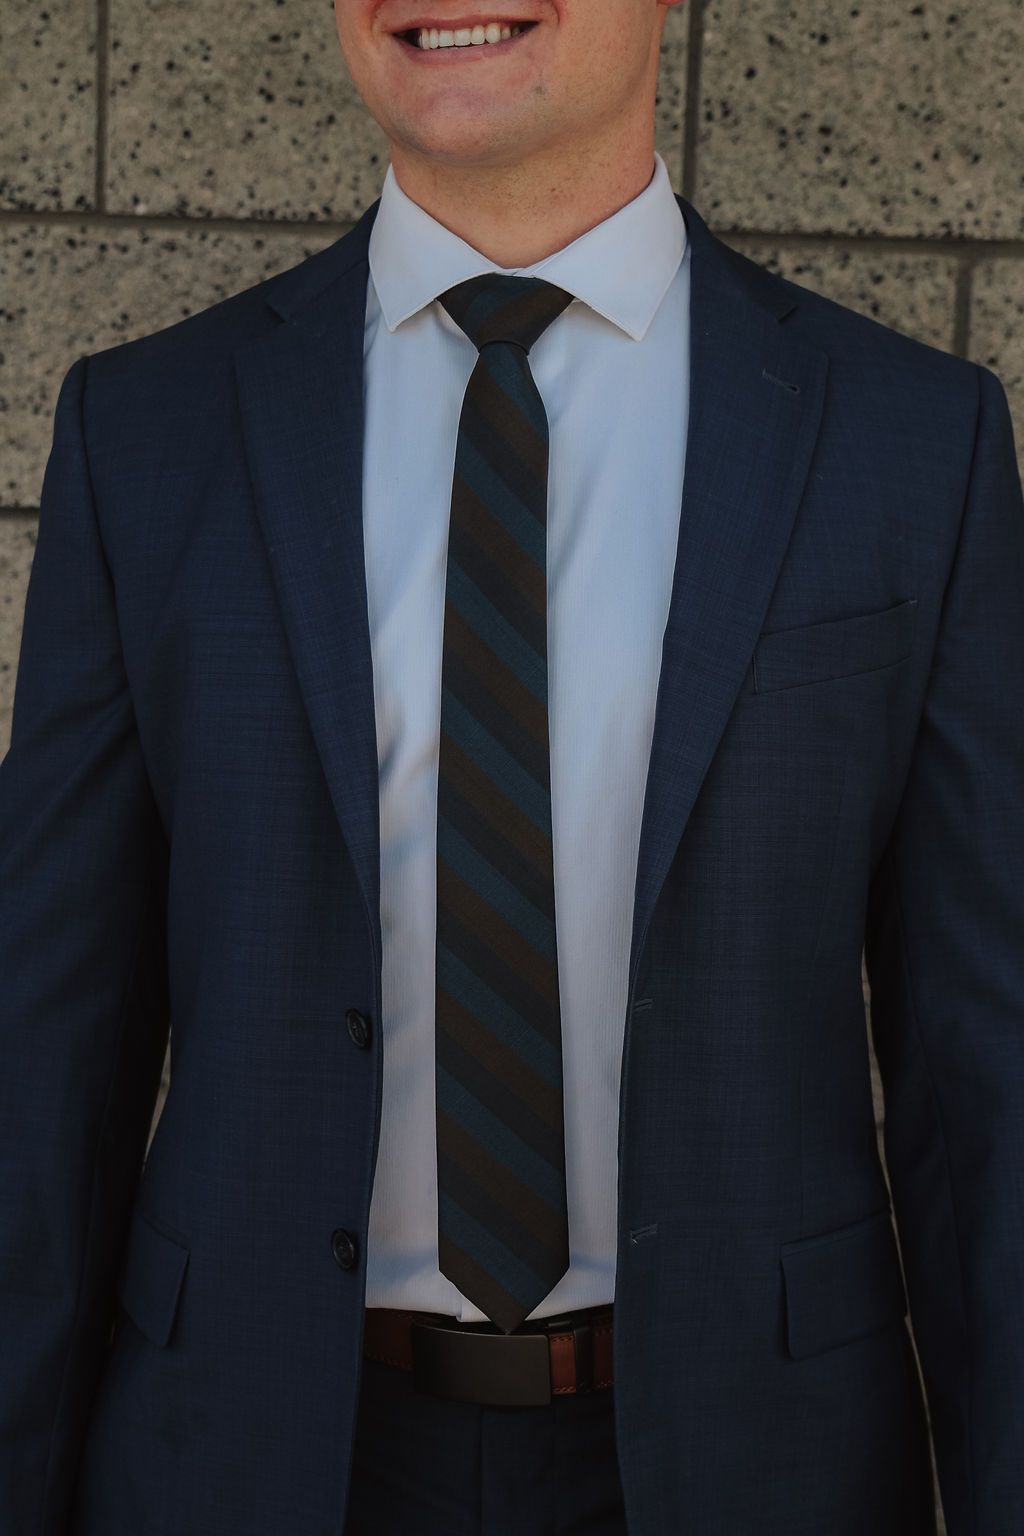 Kutcher - Blue and Brown Striped Tie